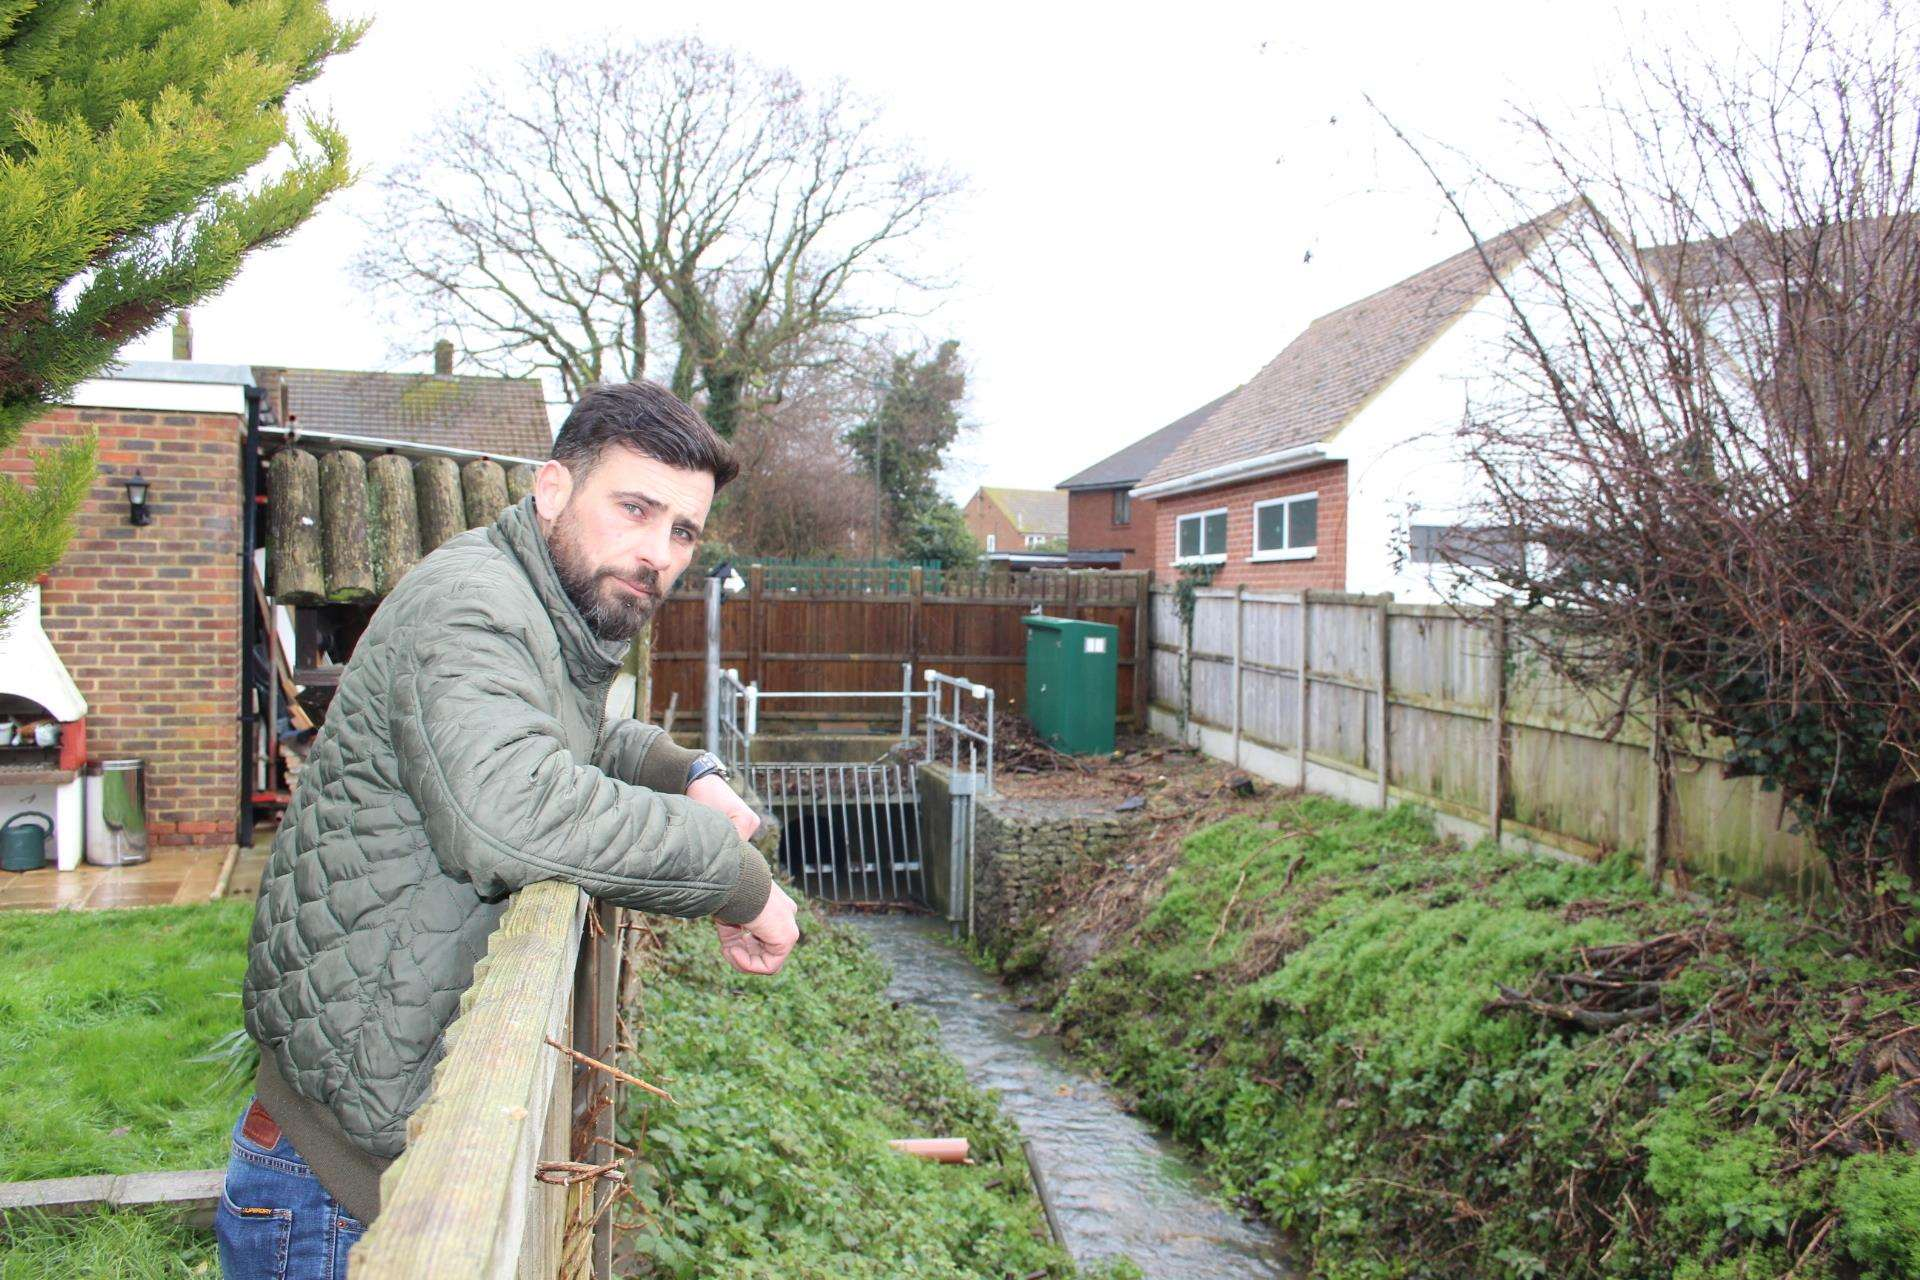 Sean Maxwell overlooks the stream next to his home in Sheerstone, Iwade (6963567)